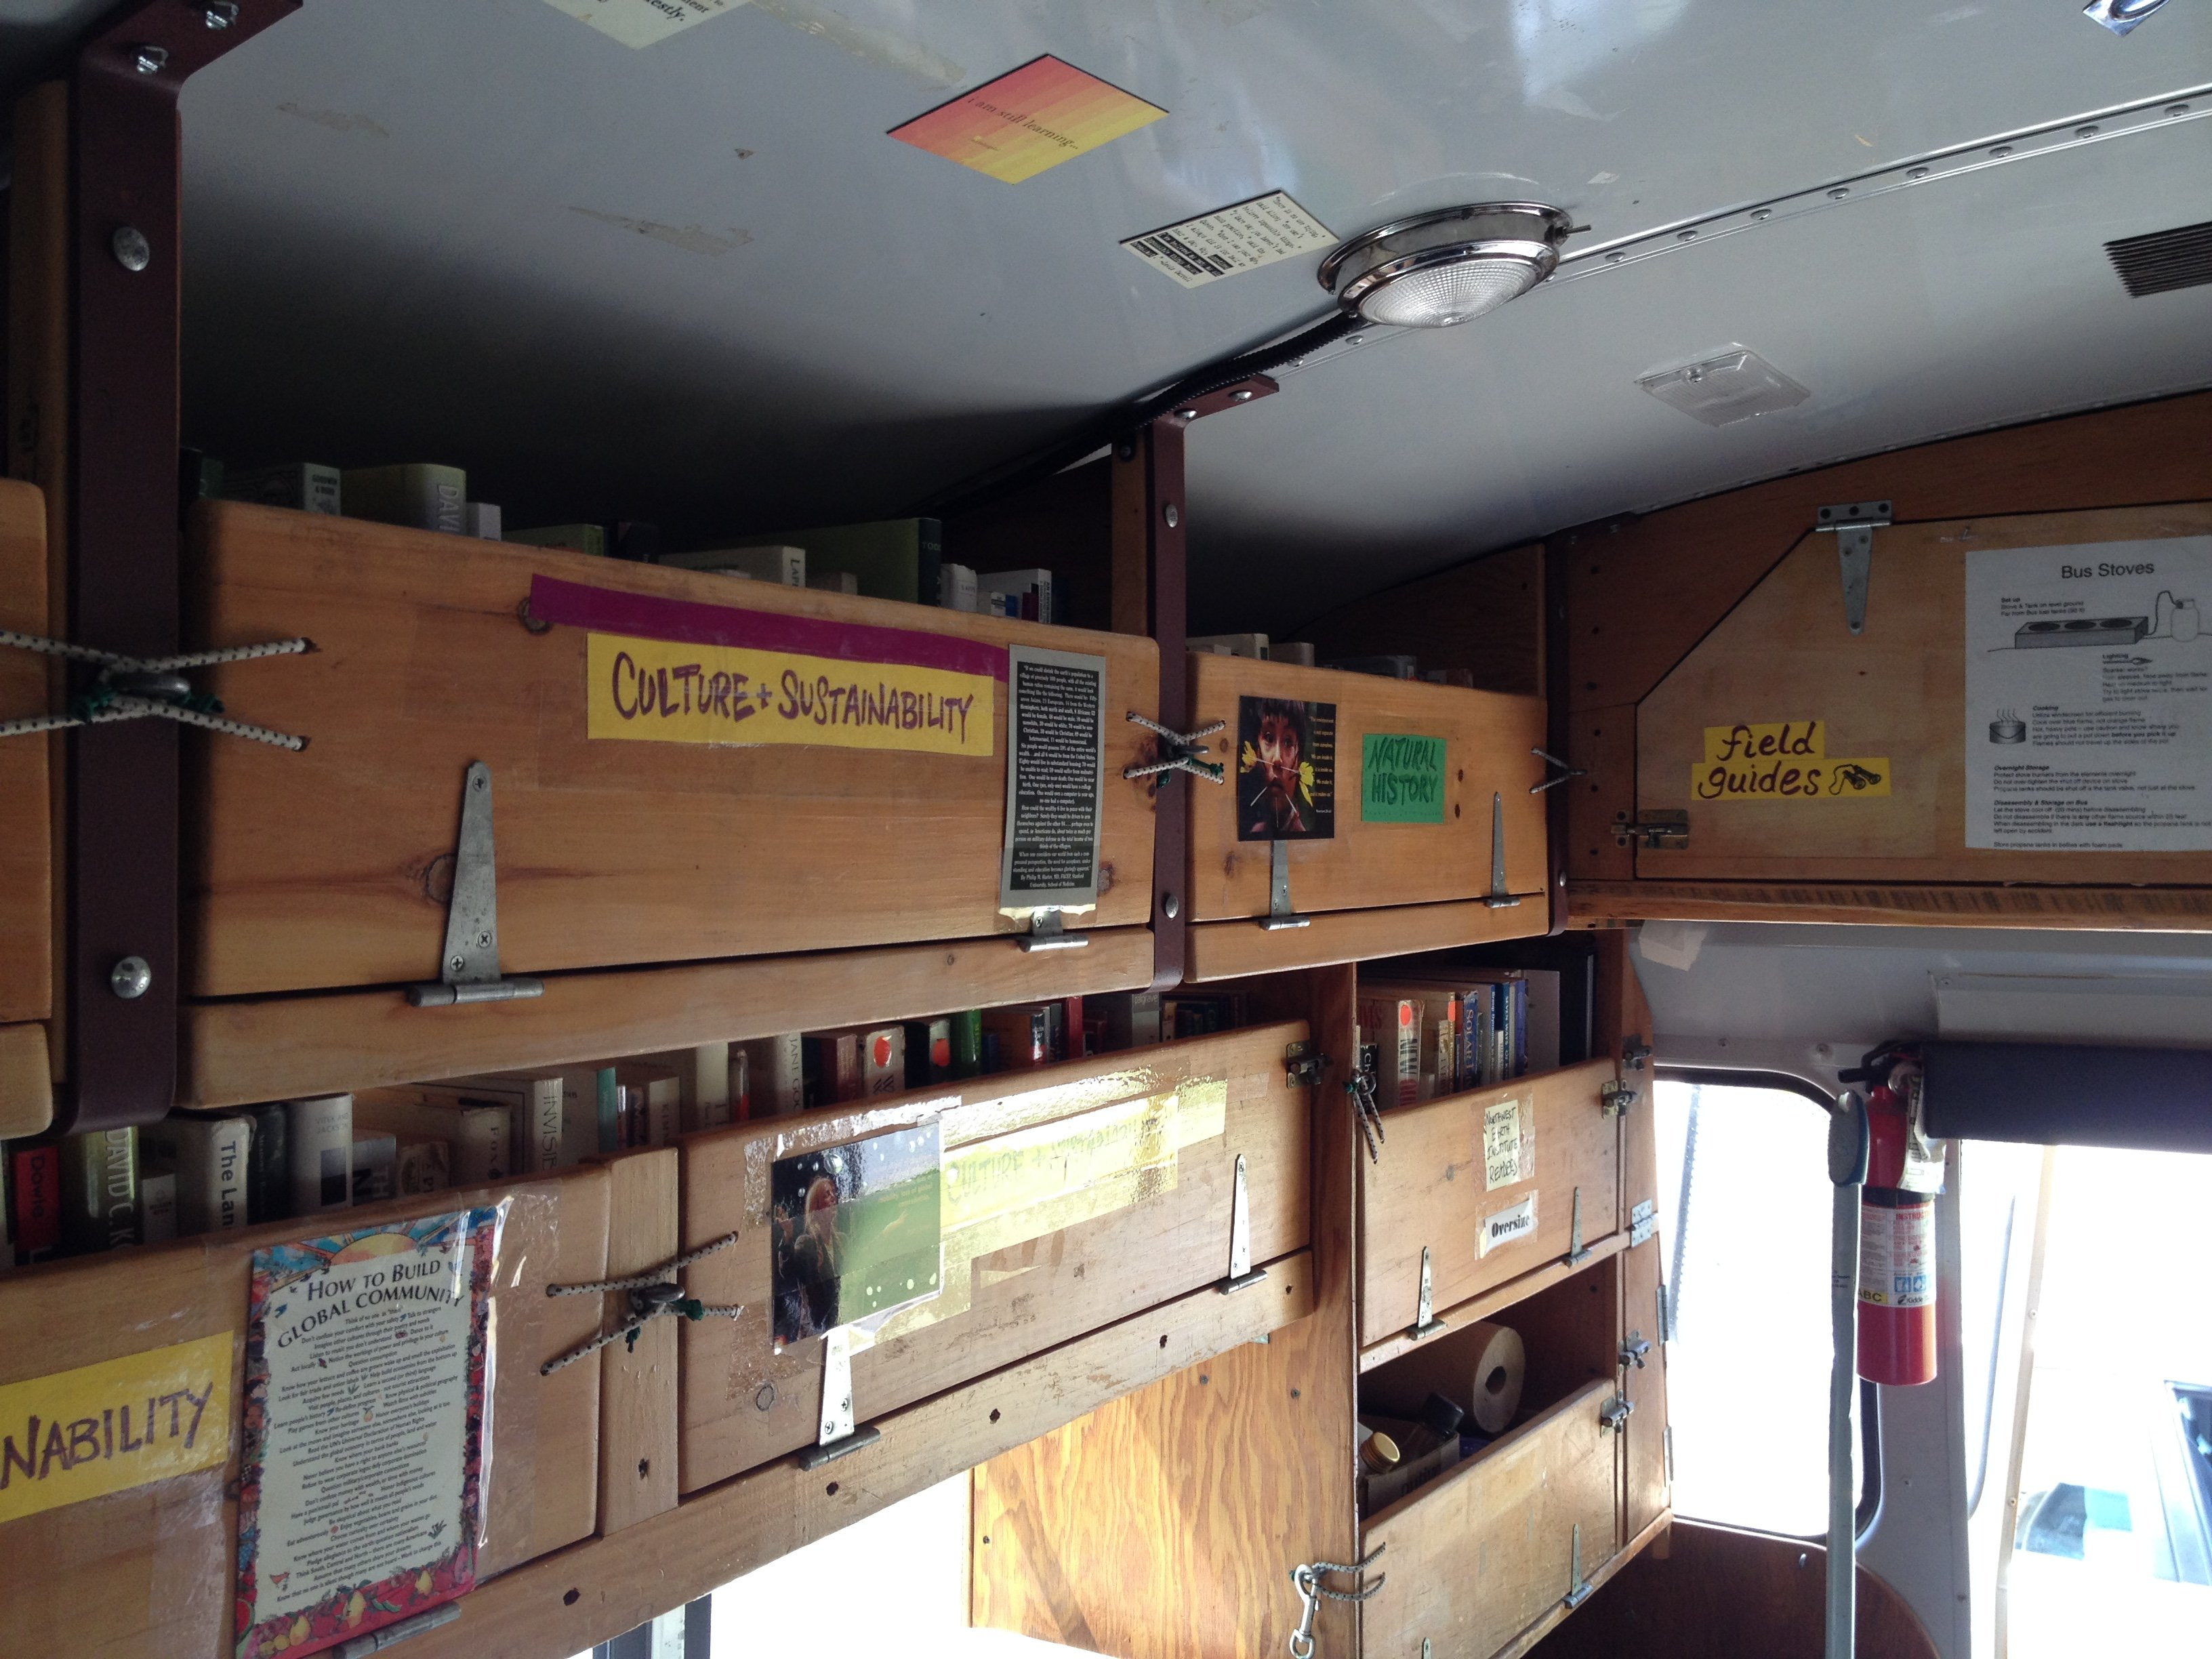 Inspiring Reading From EEI's Bus Library